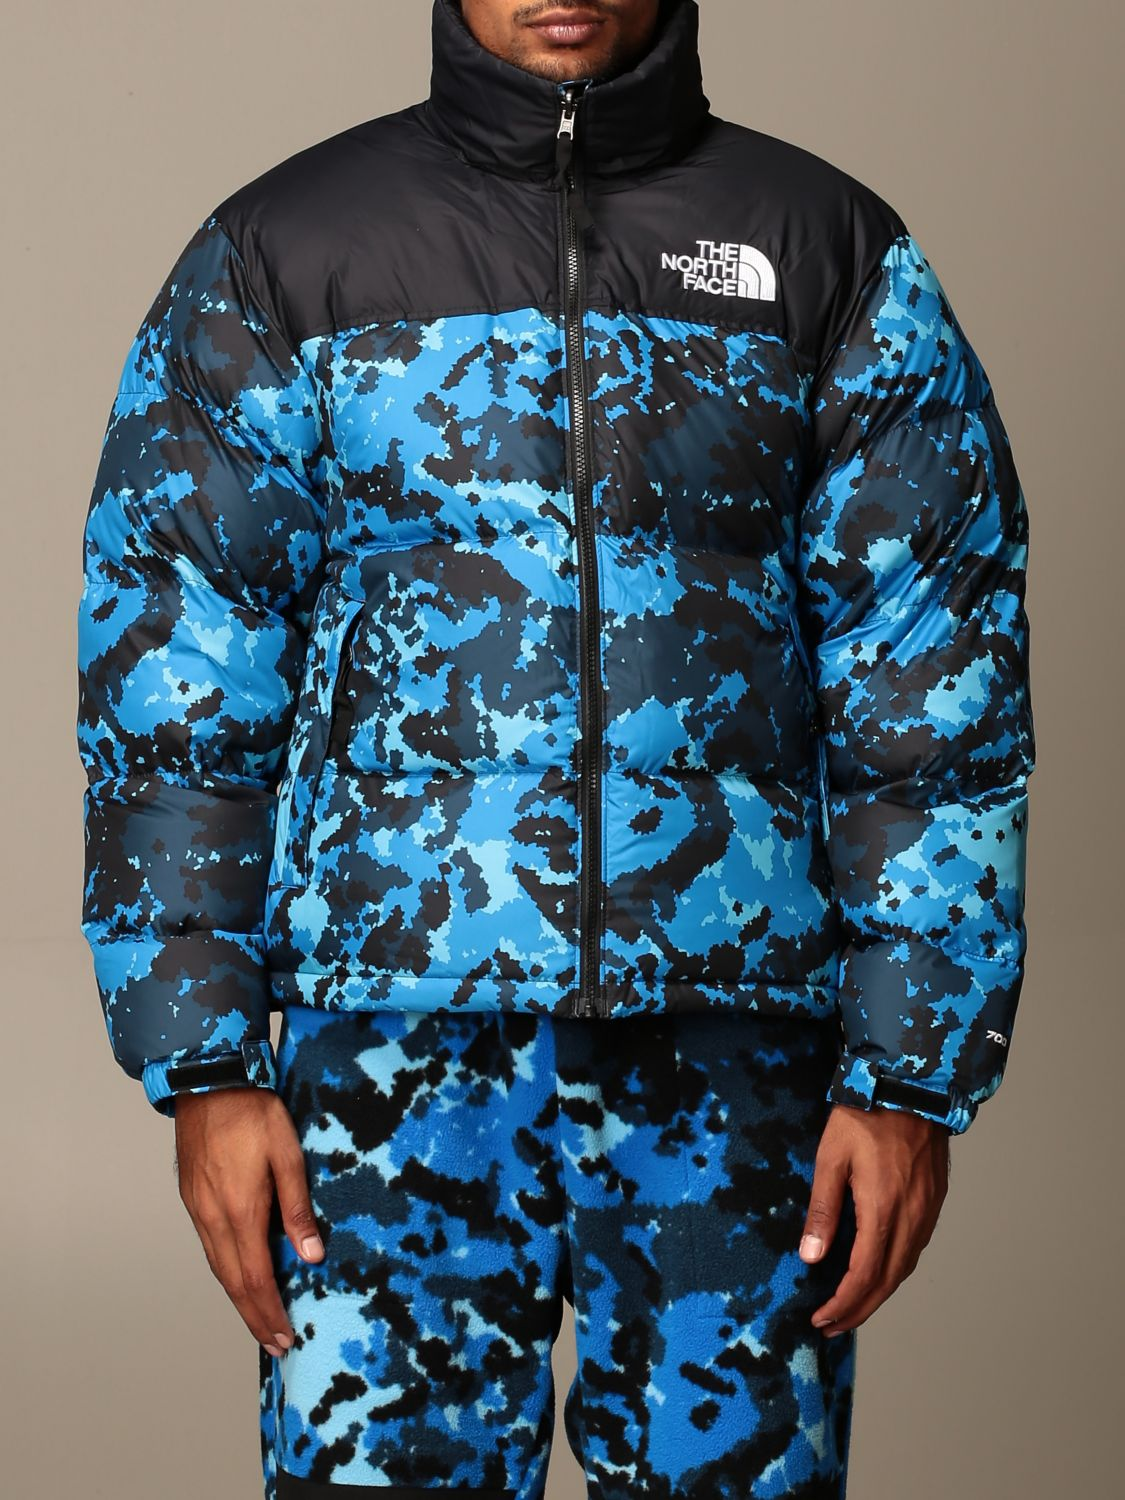 Куртка The North Face: Куртка Мужское The North Face синий 1